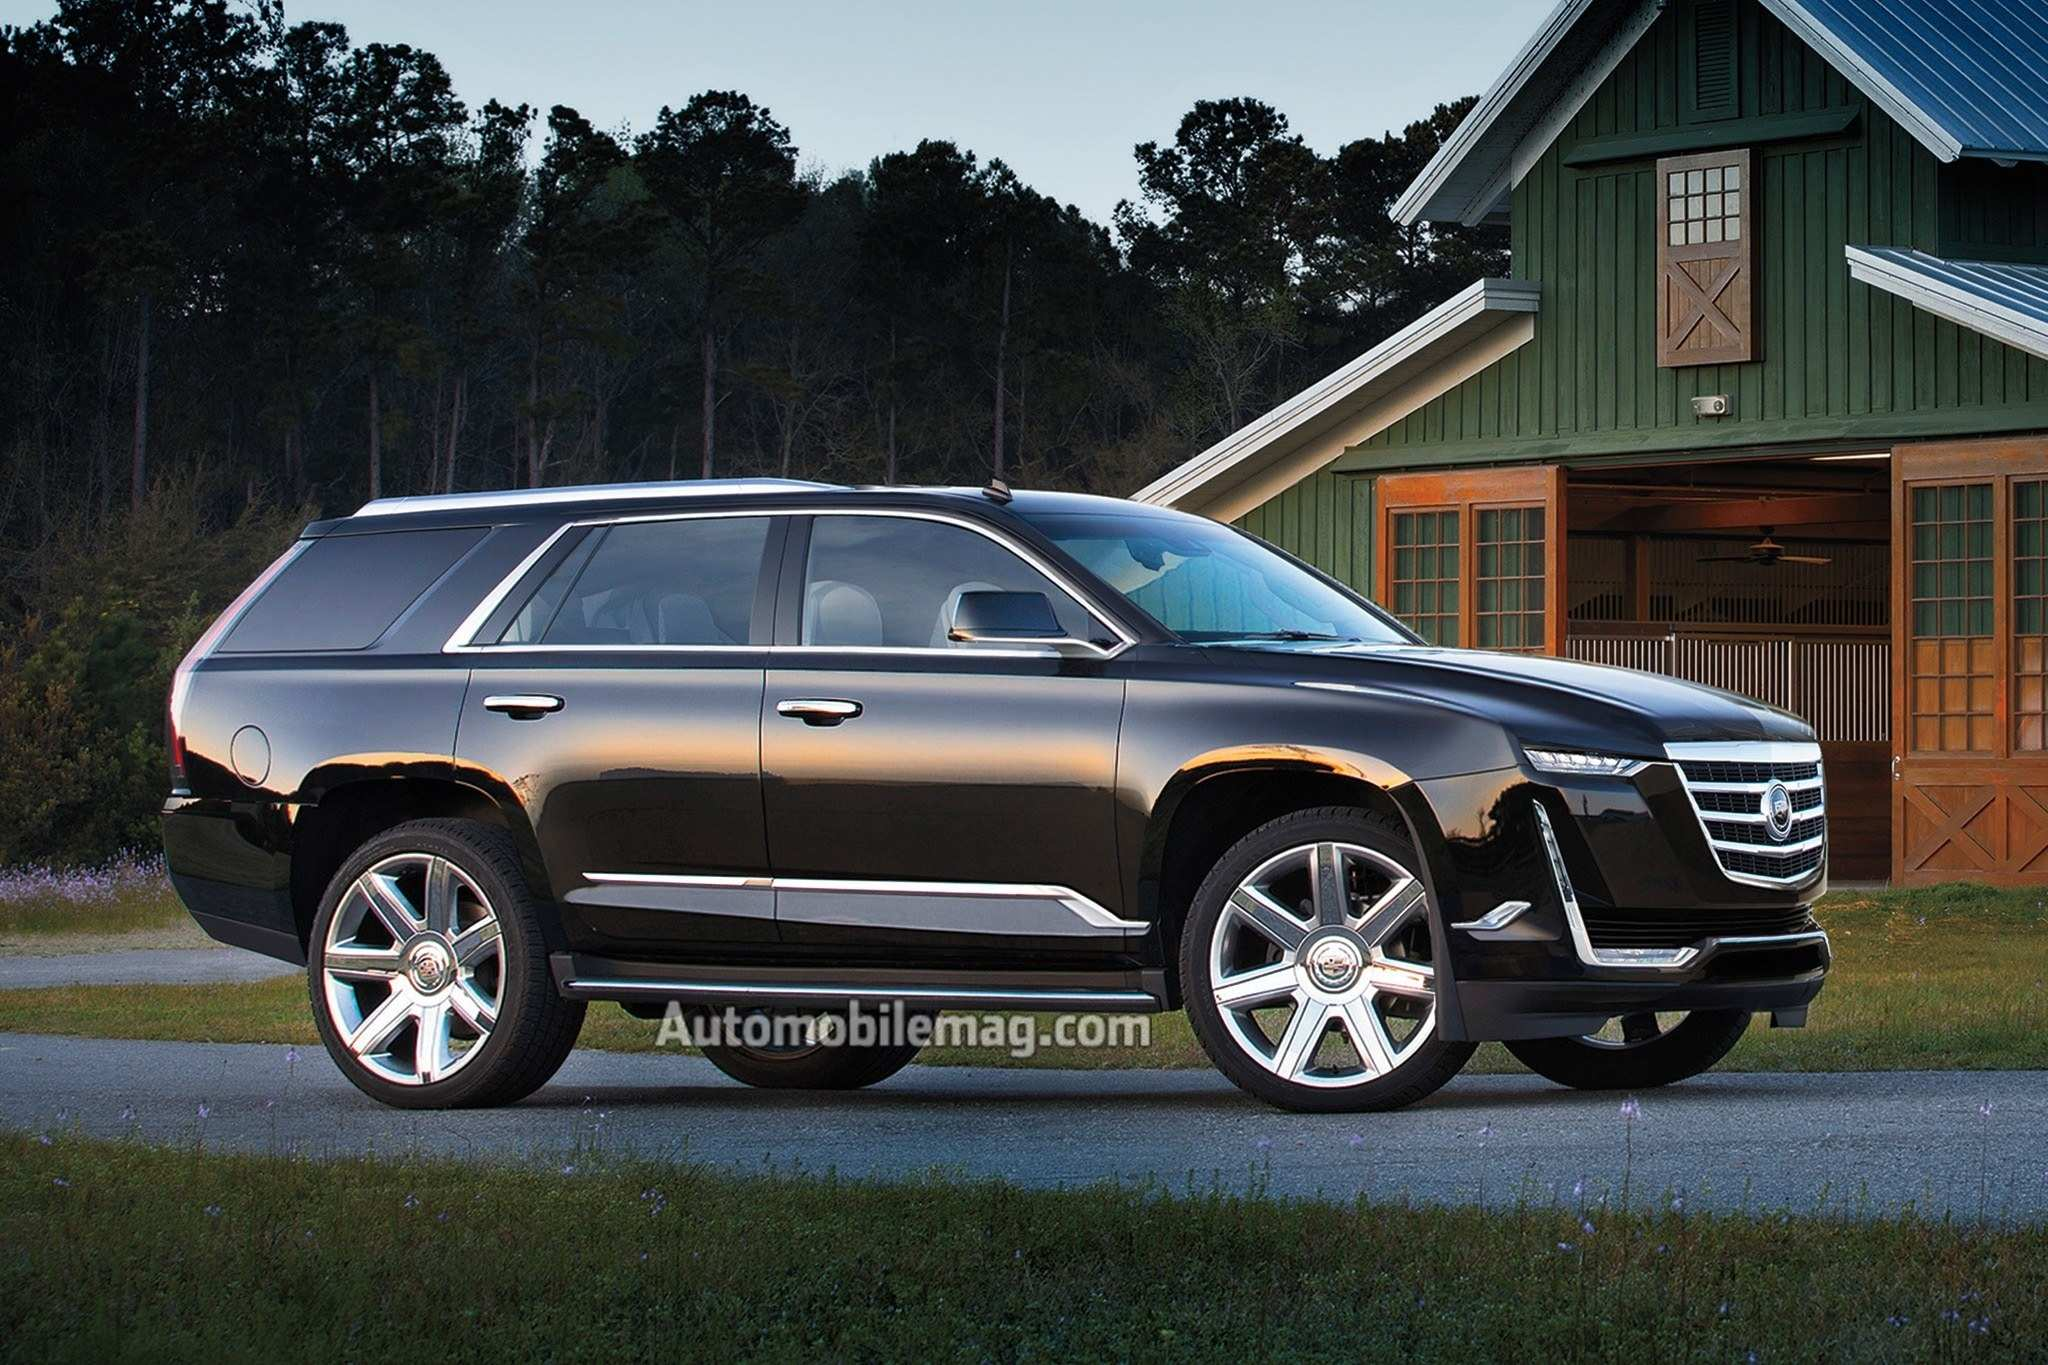 78 New Release Date For 2020 Cadillac Escalade Images